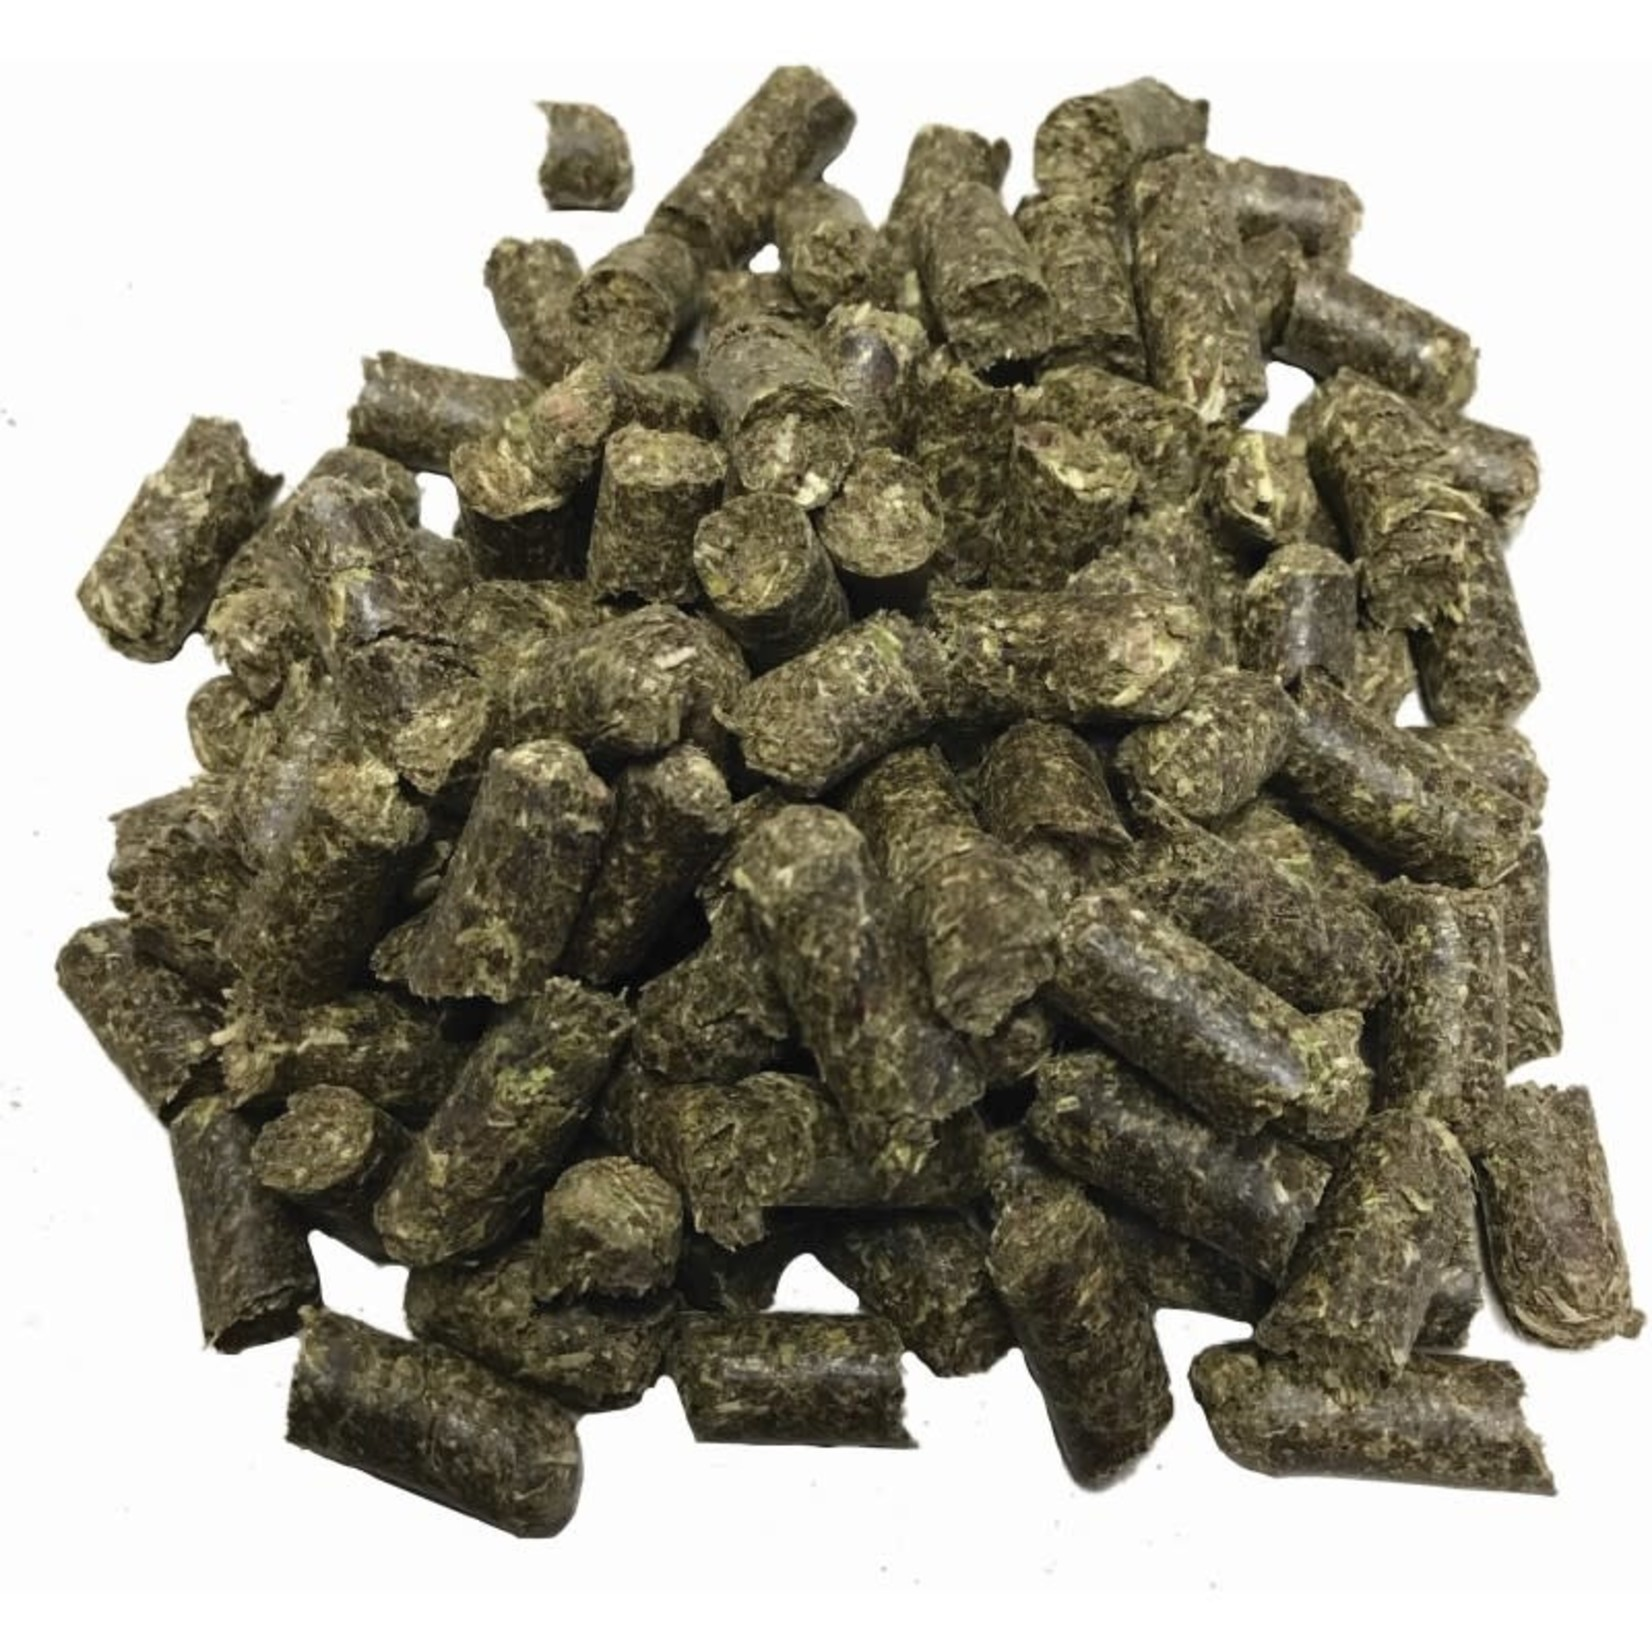 From The Field From The Field Catnip Spice Jar Ultimate Blend Pellets